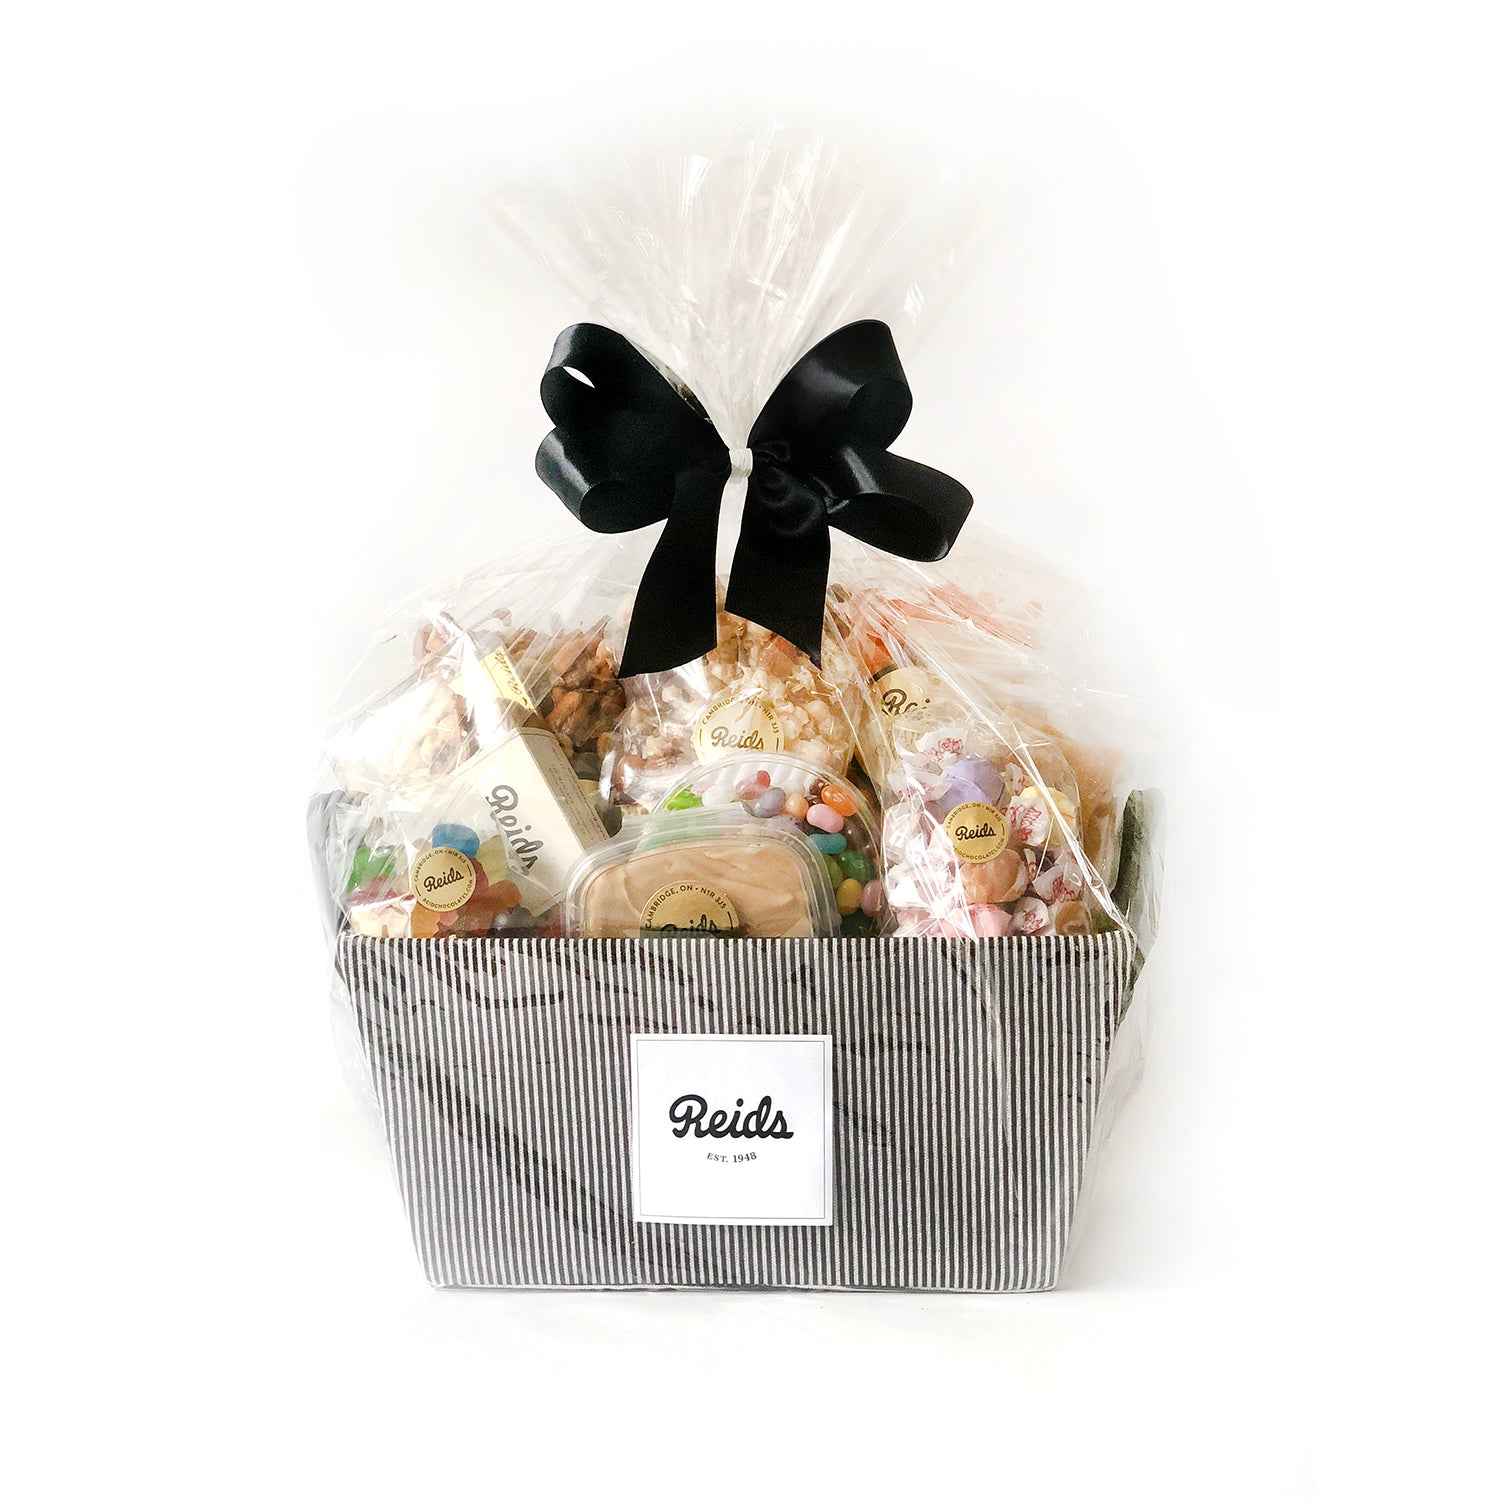 This basket is filled with treats perfect for the hot weather; Nut crisp, peanut brittle, nuts and bolts, Cajun crunch, Fancy mix nuts, Maple fudge, Salt Water taffy, 1/2 lb candy mix and jelly bellies.